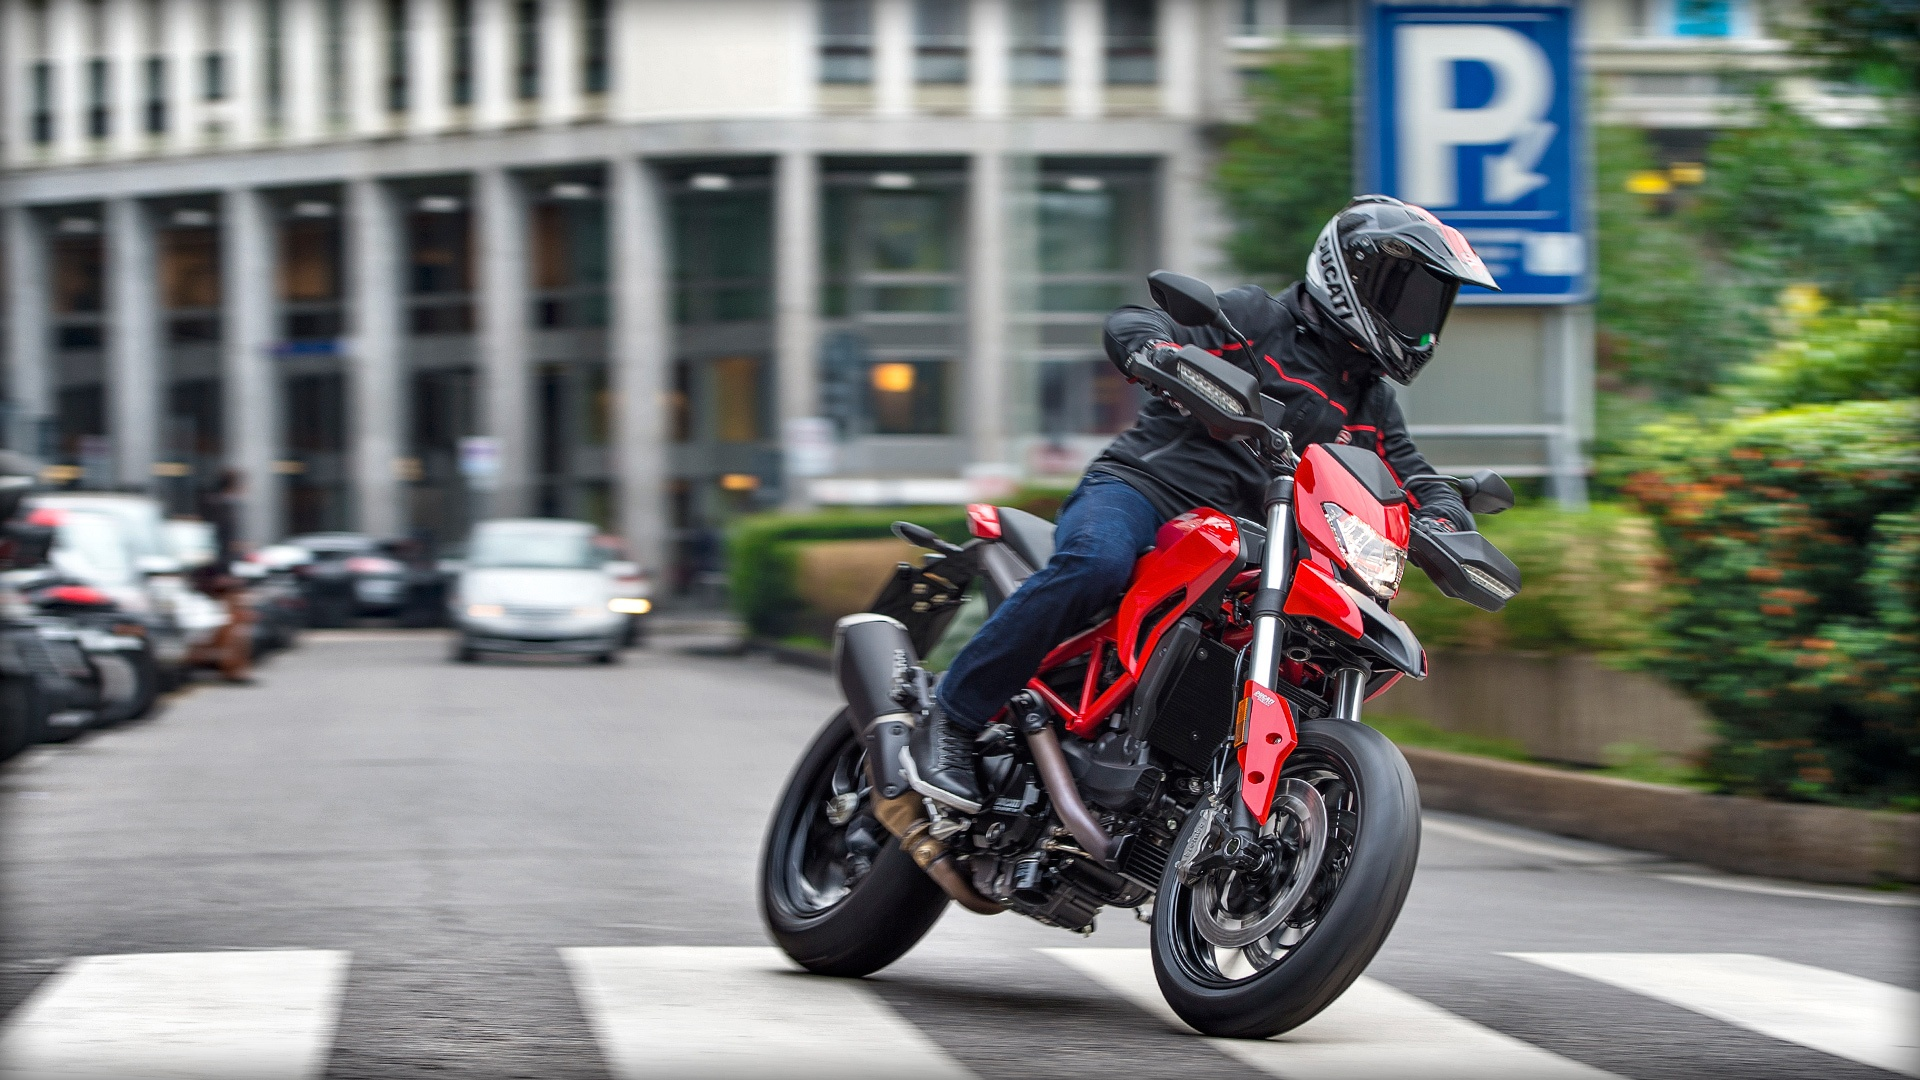 2017 Ducati Hypermotard 939 in Miami, Florida